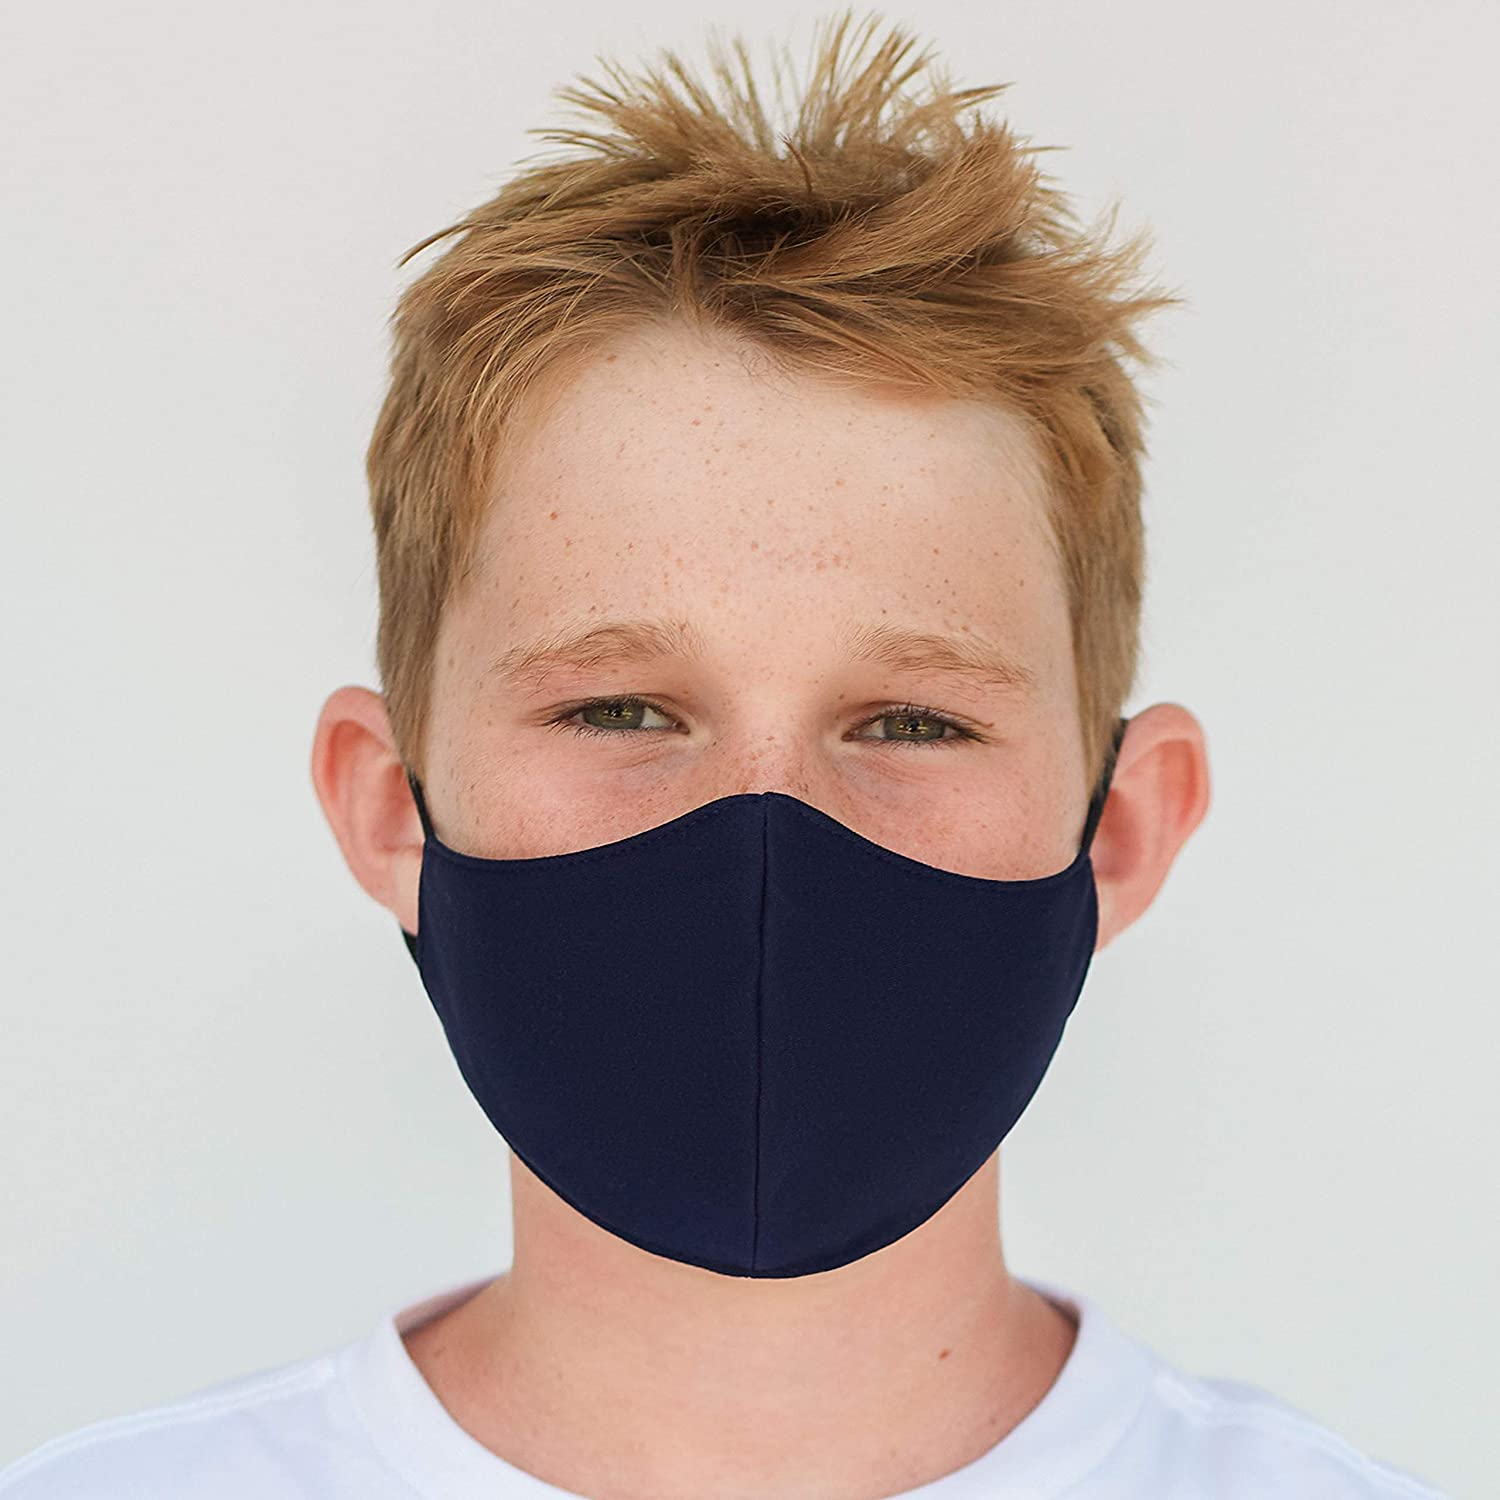 Youth Washable Face Mask with Adjustable Earloops & Nose Wire - 3 Layers, 100% Cotton Inner Layer - Ages: 6-12 - Cloth Reusable Face Protection with Filter Pocket (Solid Navy)